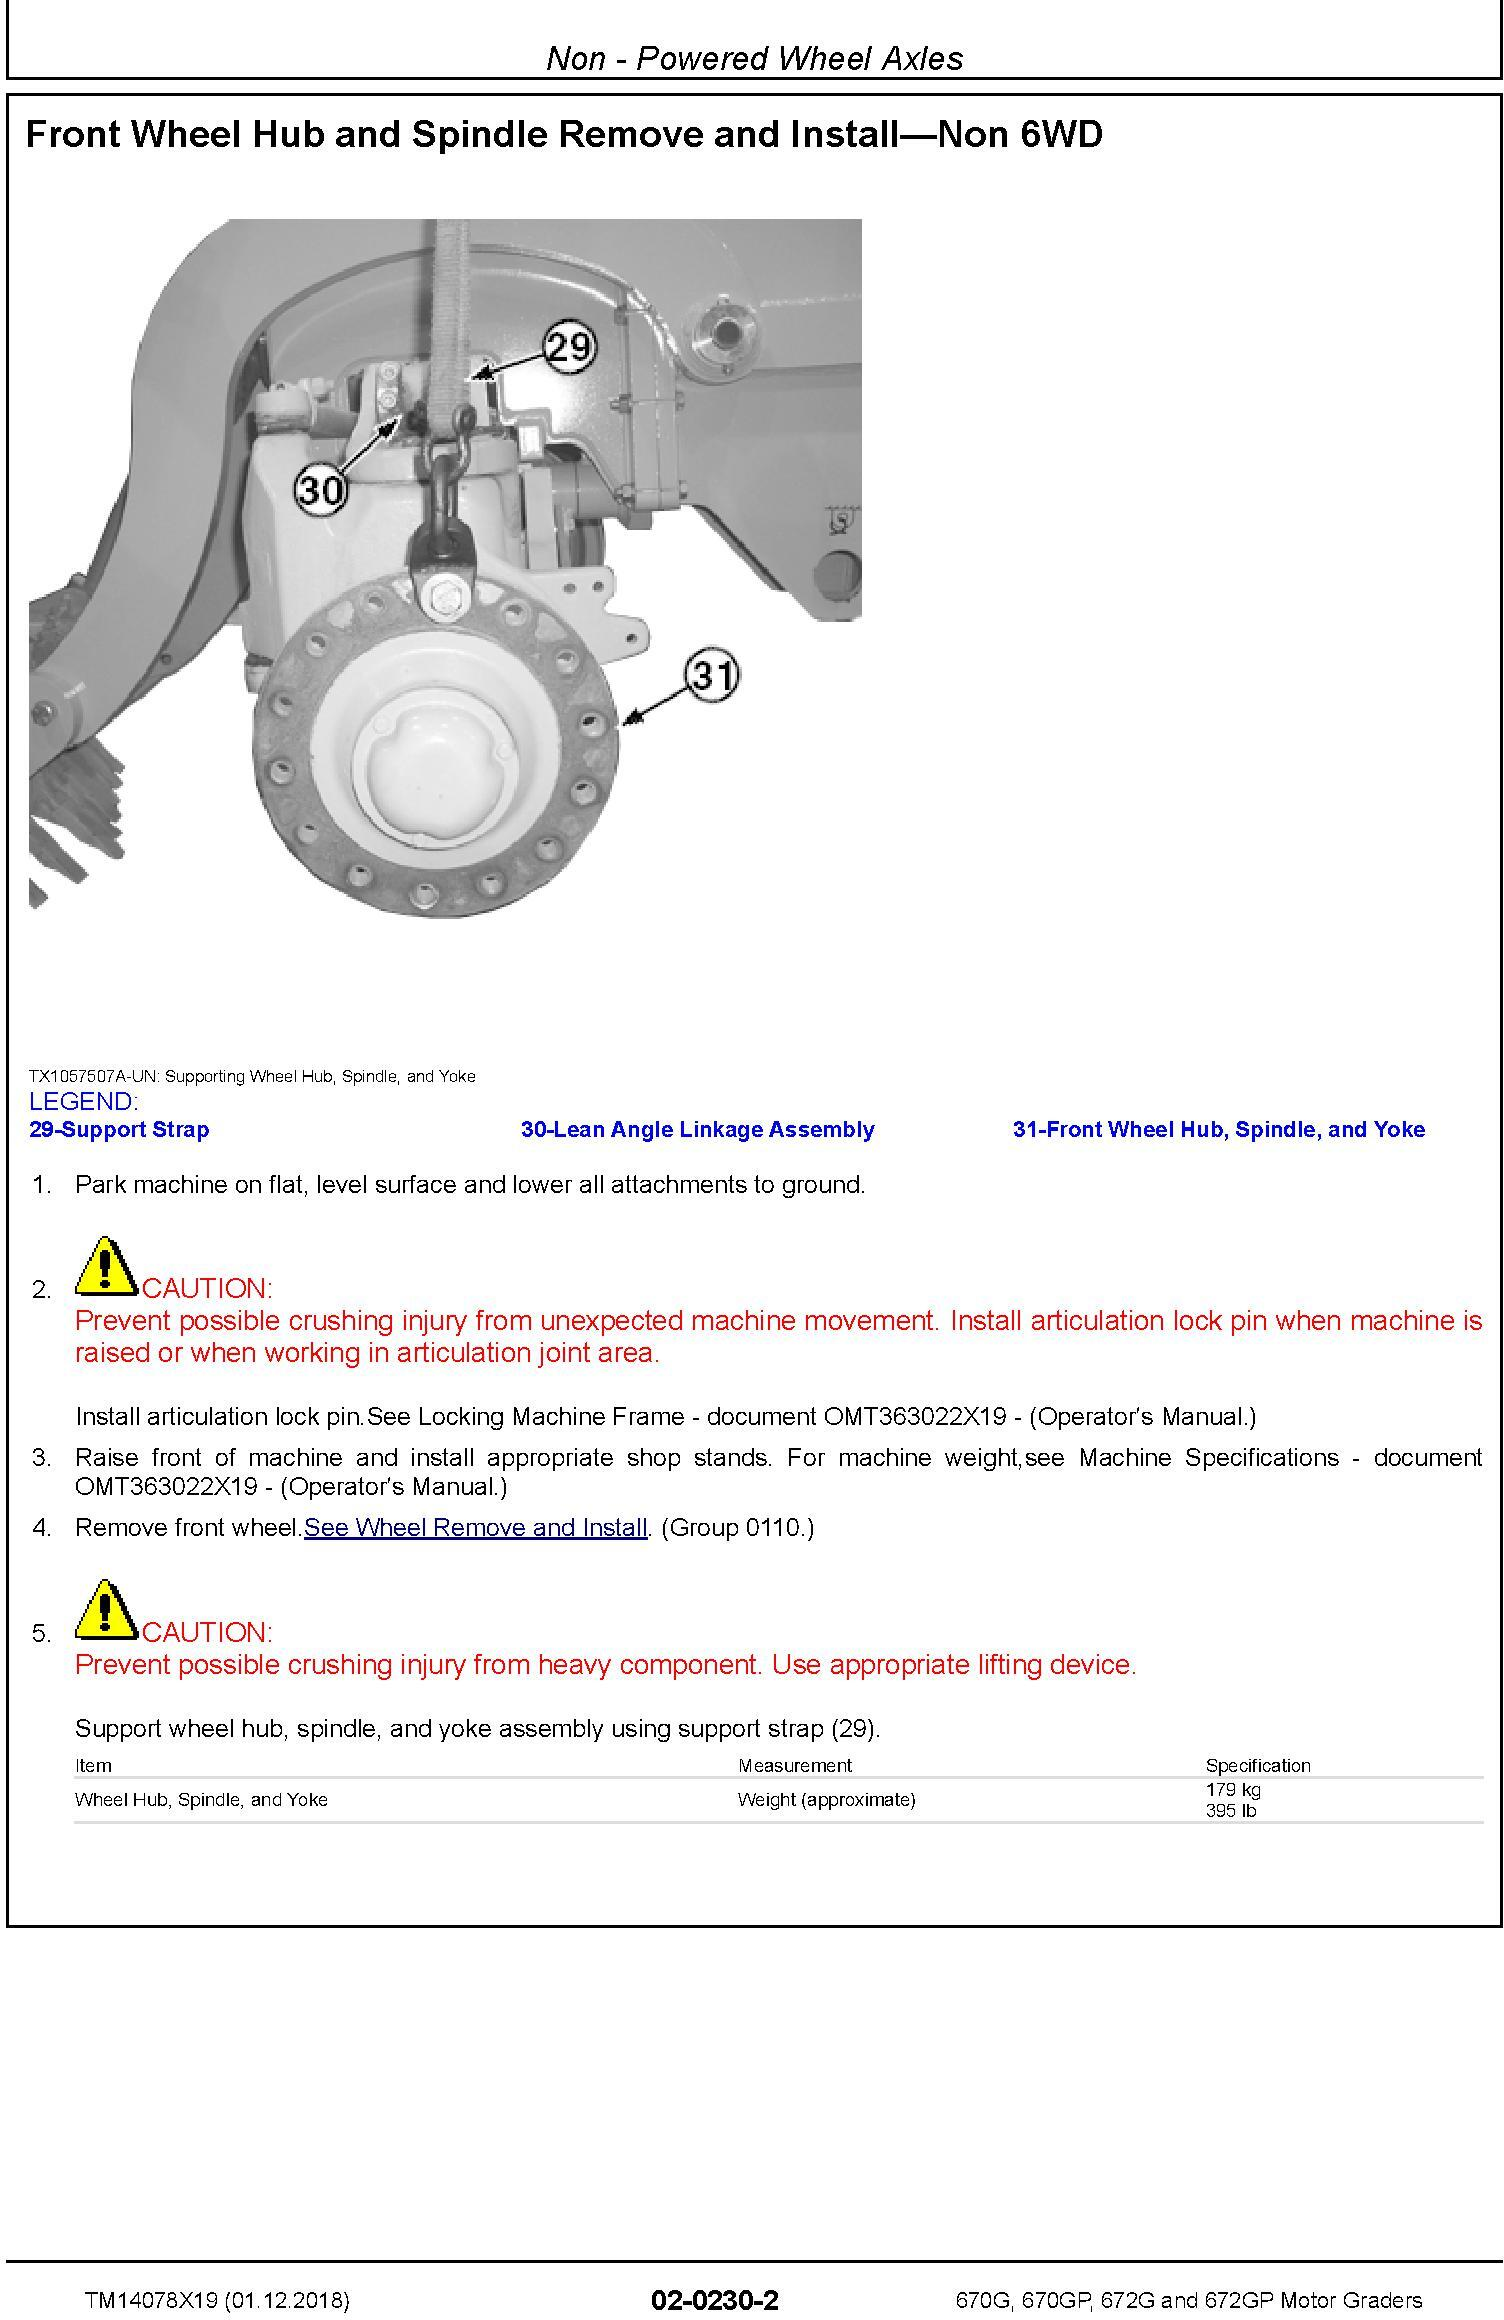 John Deere 670G, 670GP, 672G, 672GP (SN. C678818—680877) Motor Graders Repair Manual (TM14078X19) - 1